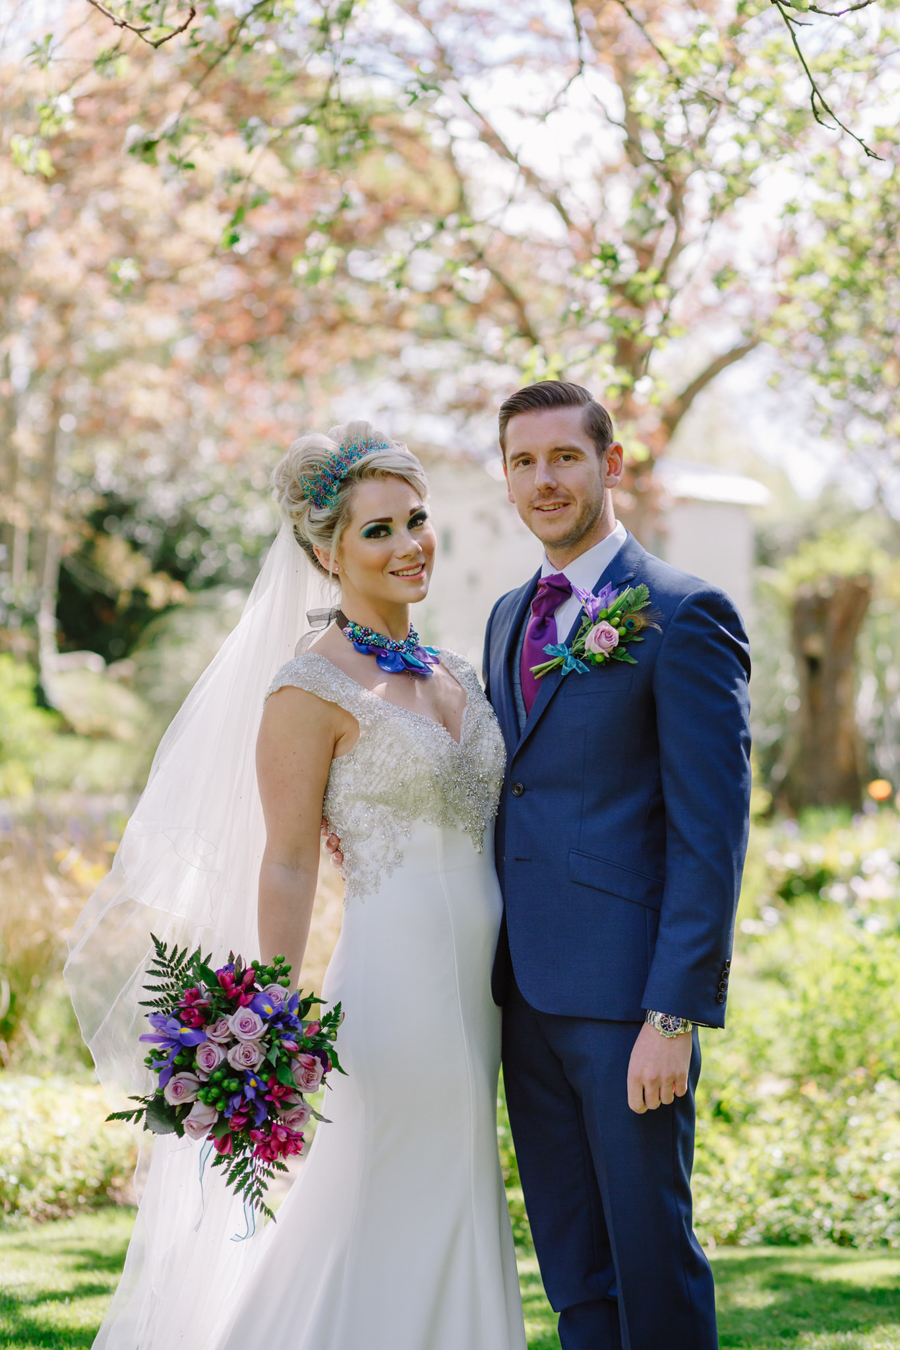 Teal and purple peacock wedding ideas by planner Karen Luxford, image by Sarah Wayte Photography (4)